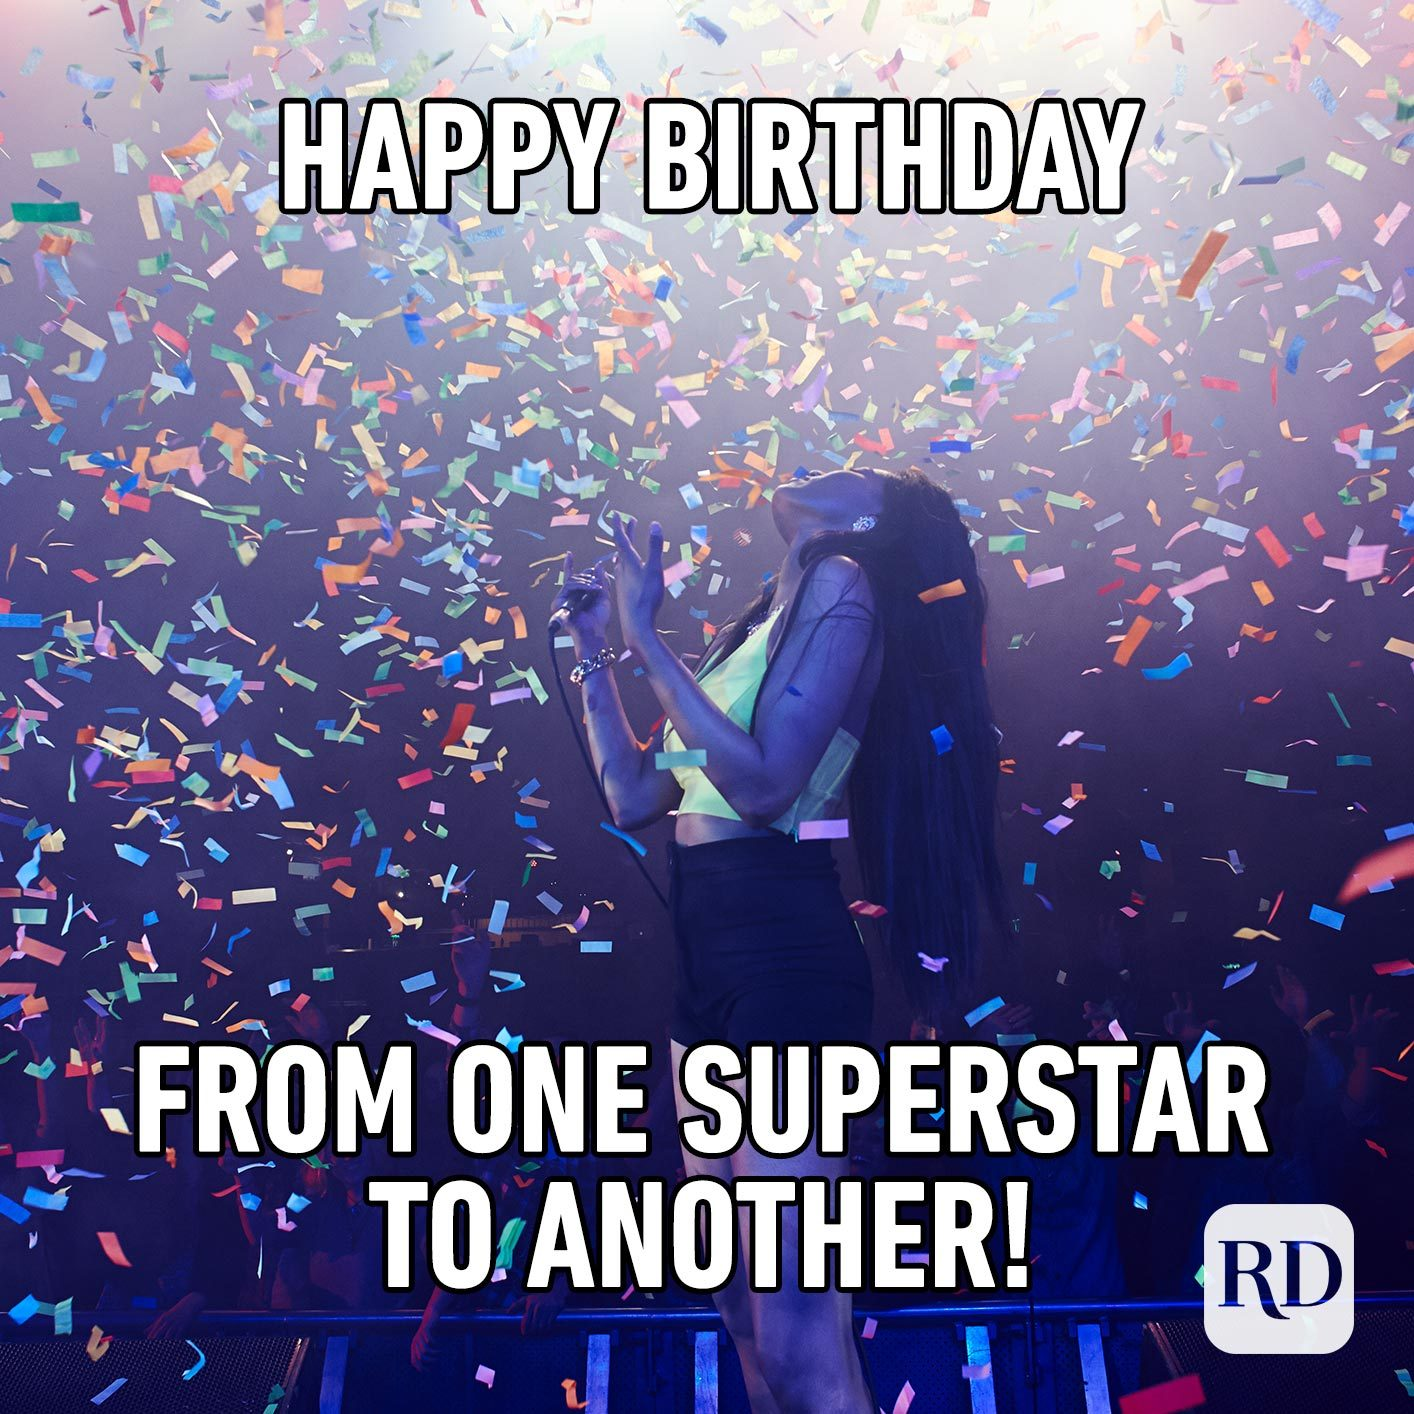 Happy Birthday from one superstar to another!